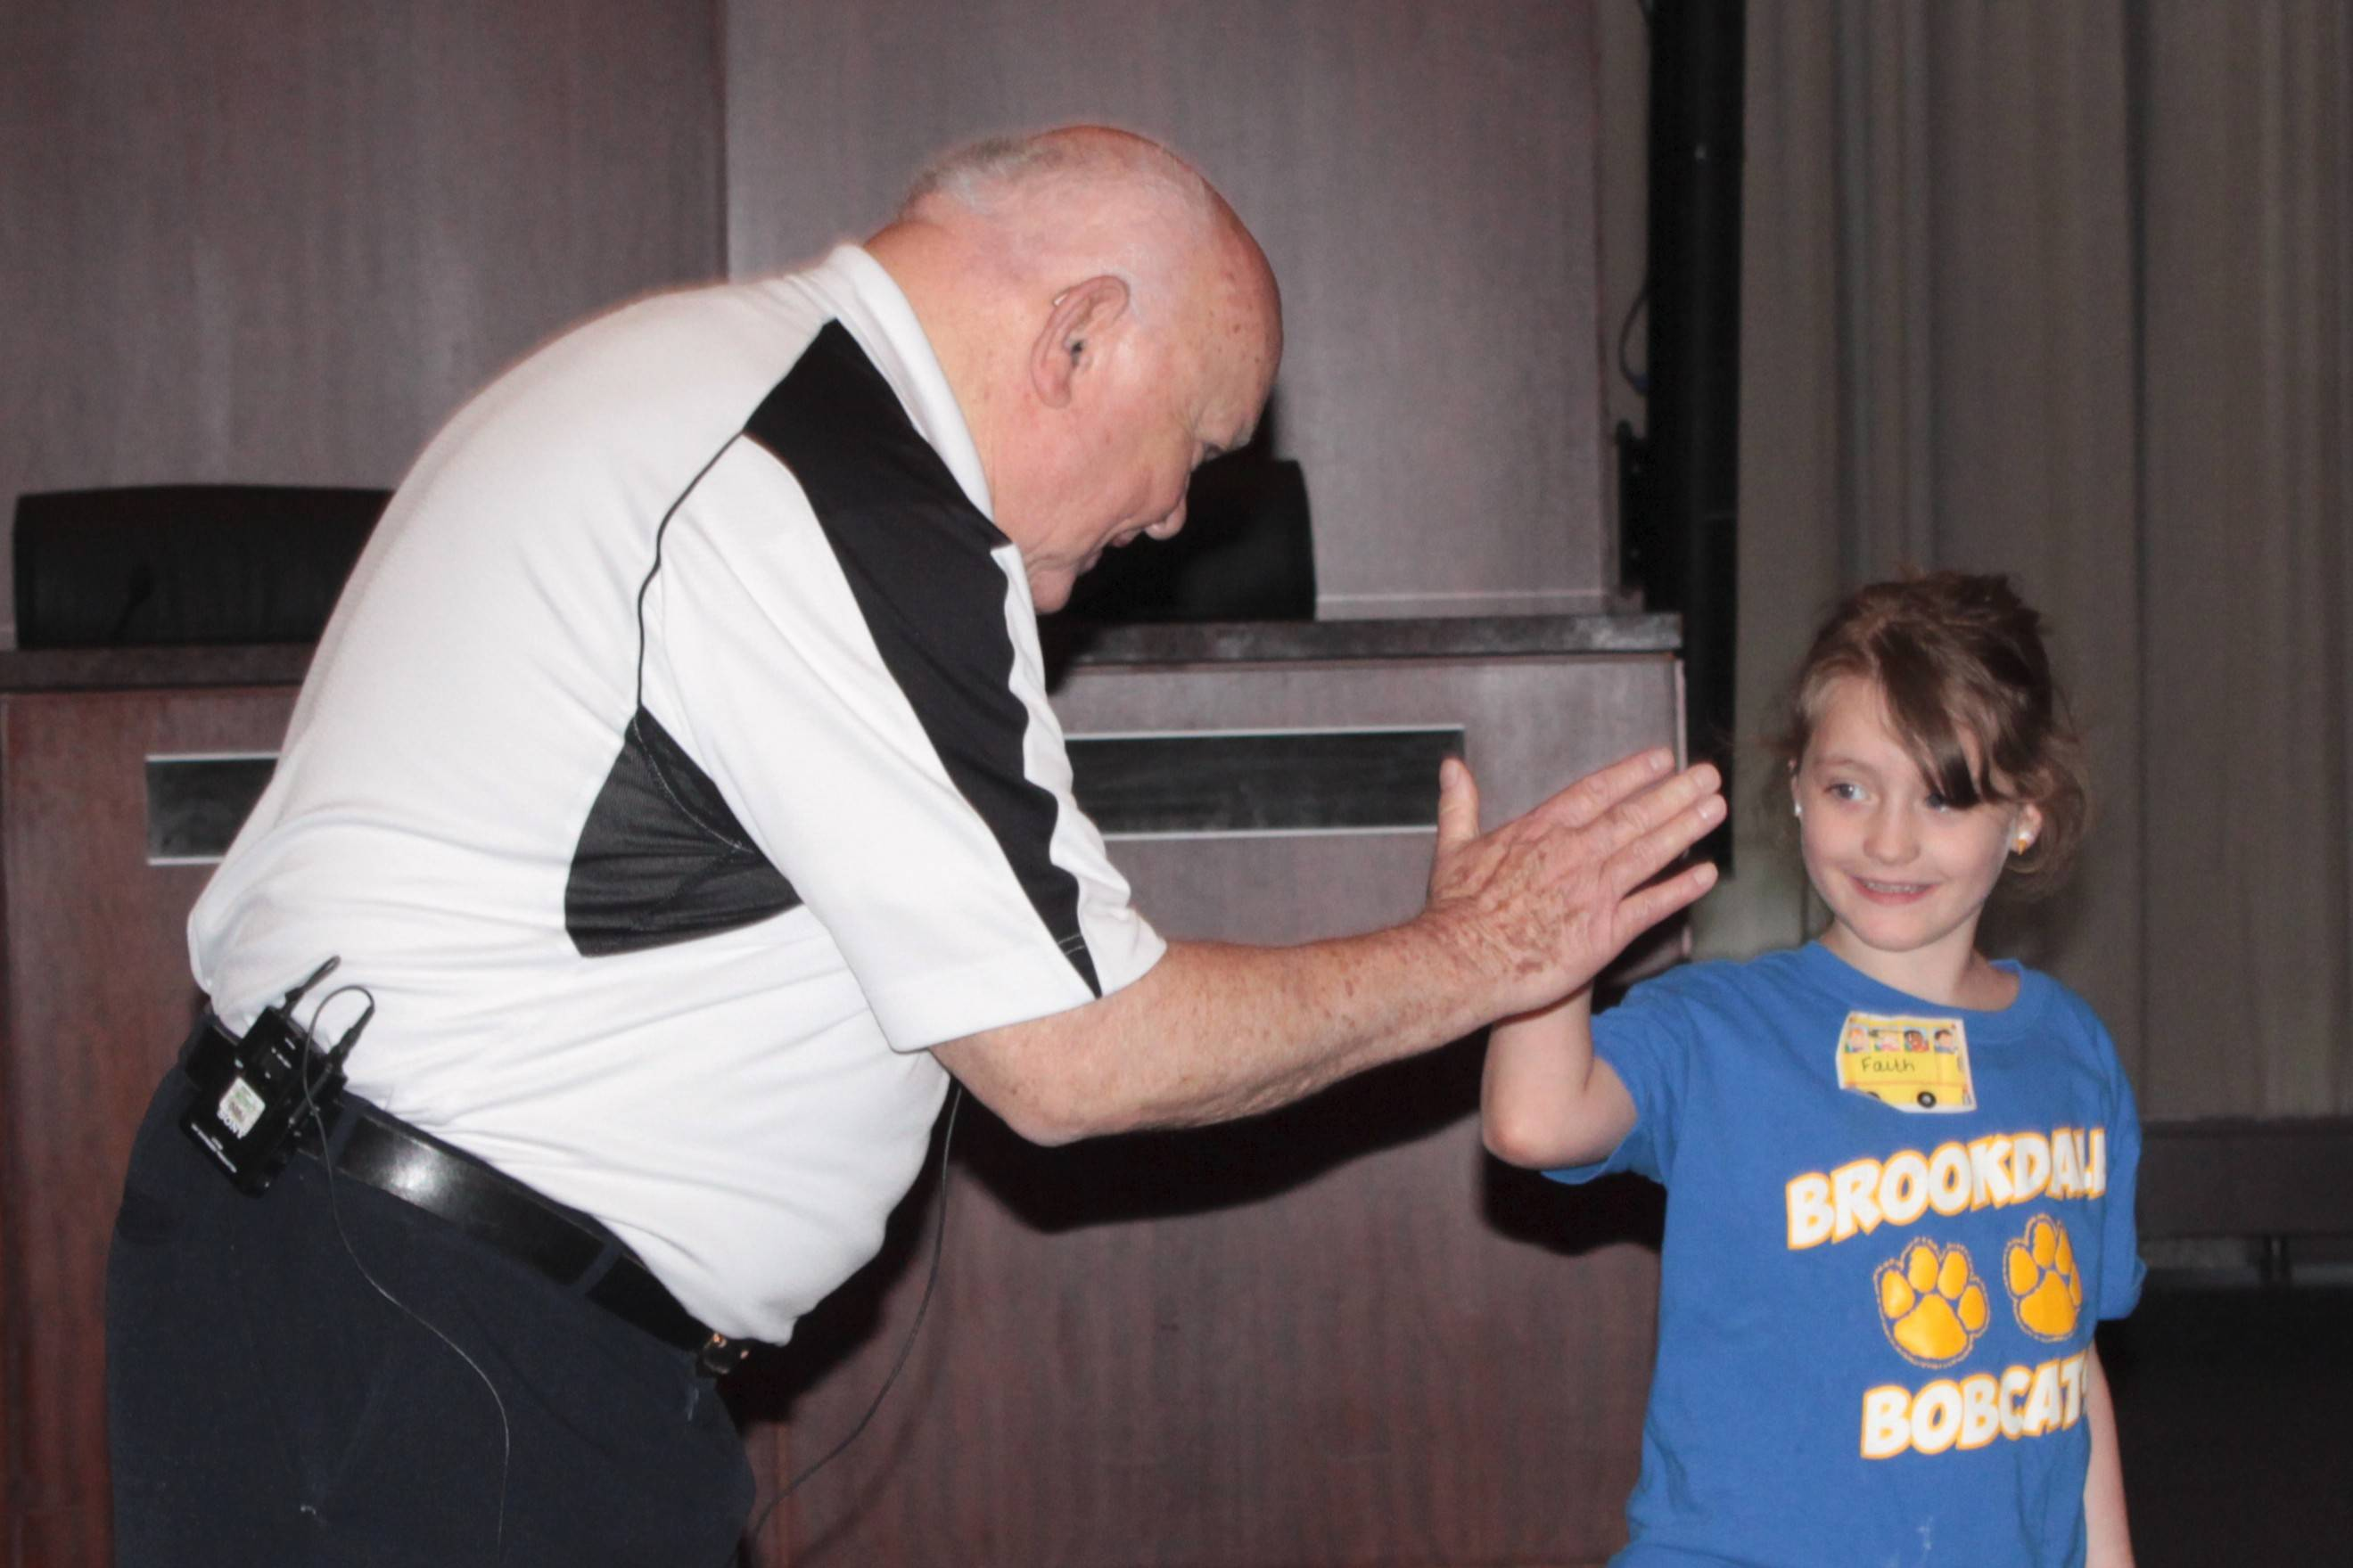 Kindergartners at Naperville's Brookdale Elementary School wrapped up lessons about their community and the people who work there with a field trip to downtown Naperville, where they visited Mayor George Pradel at city hall.